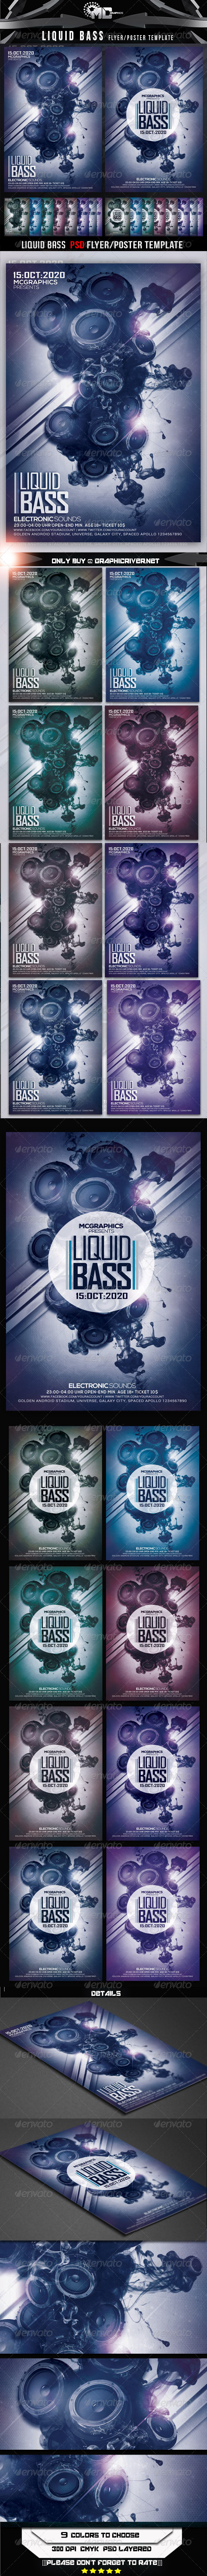 Liquid Bass Flyer Template - Print Templates